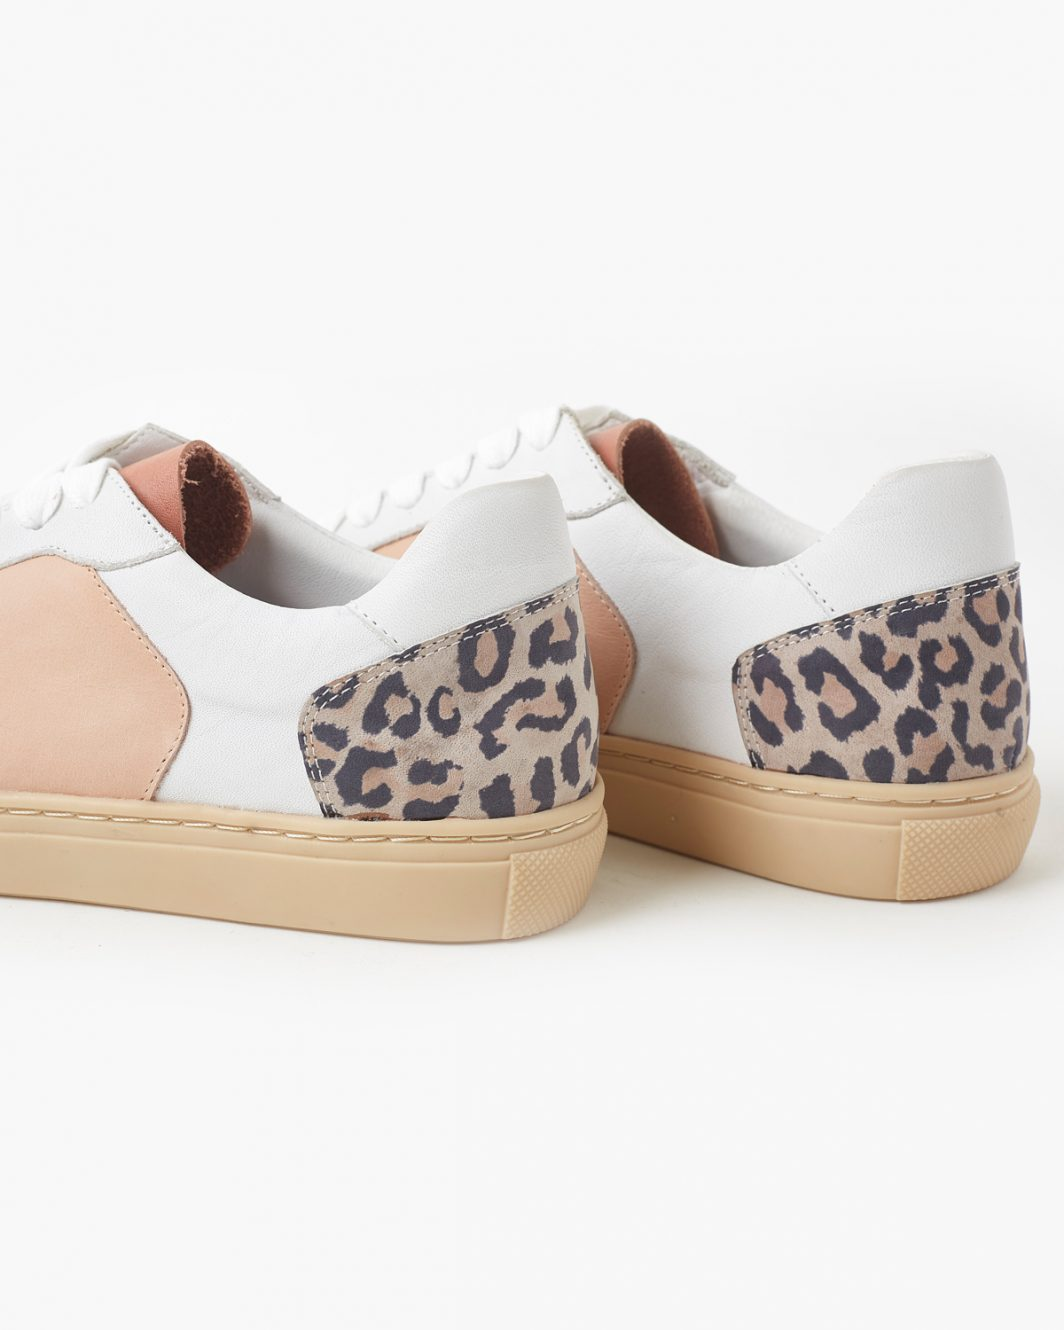 Tao Leather Sneaker - Taupe Leopard 1